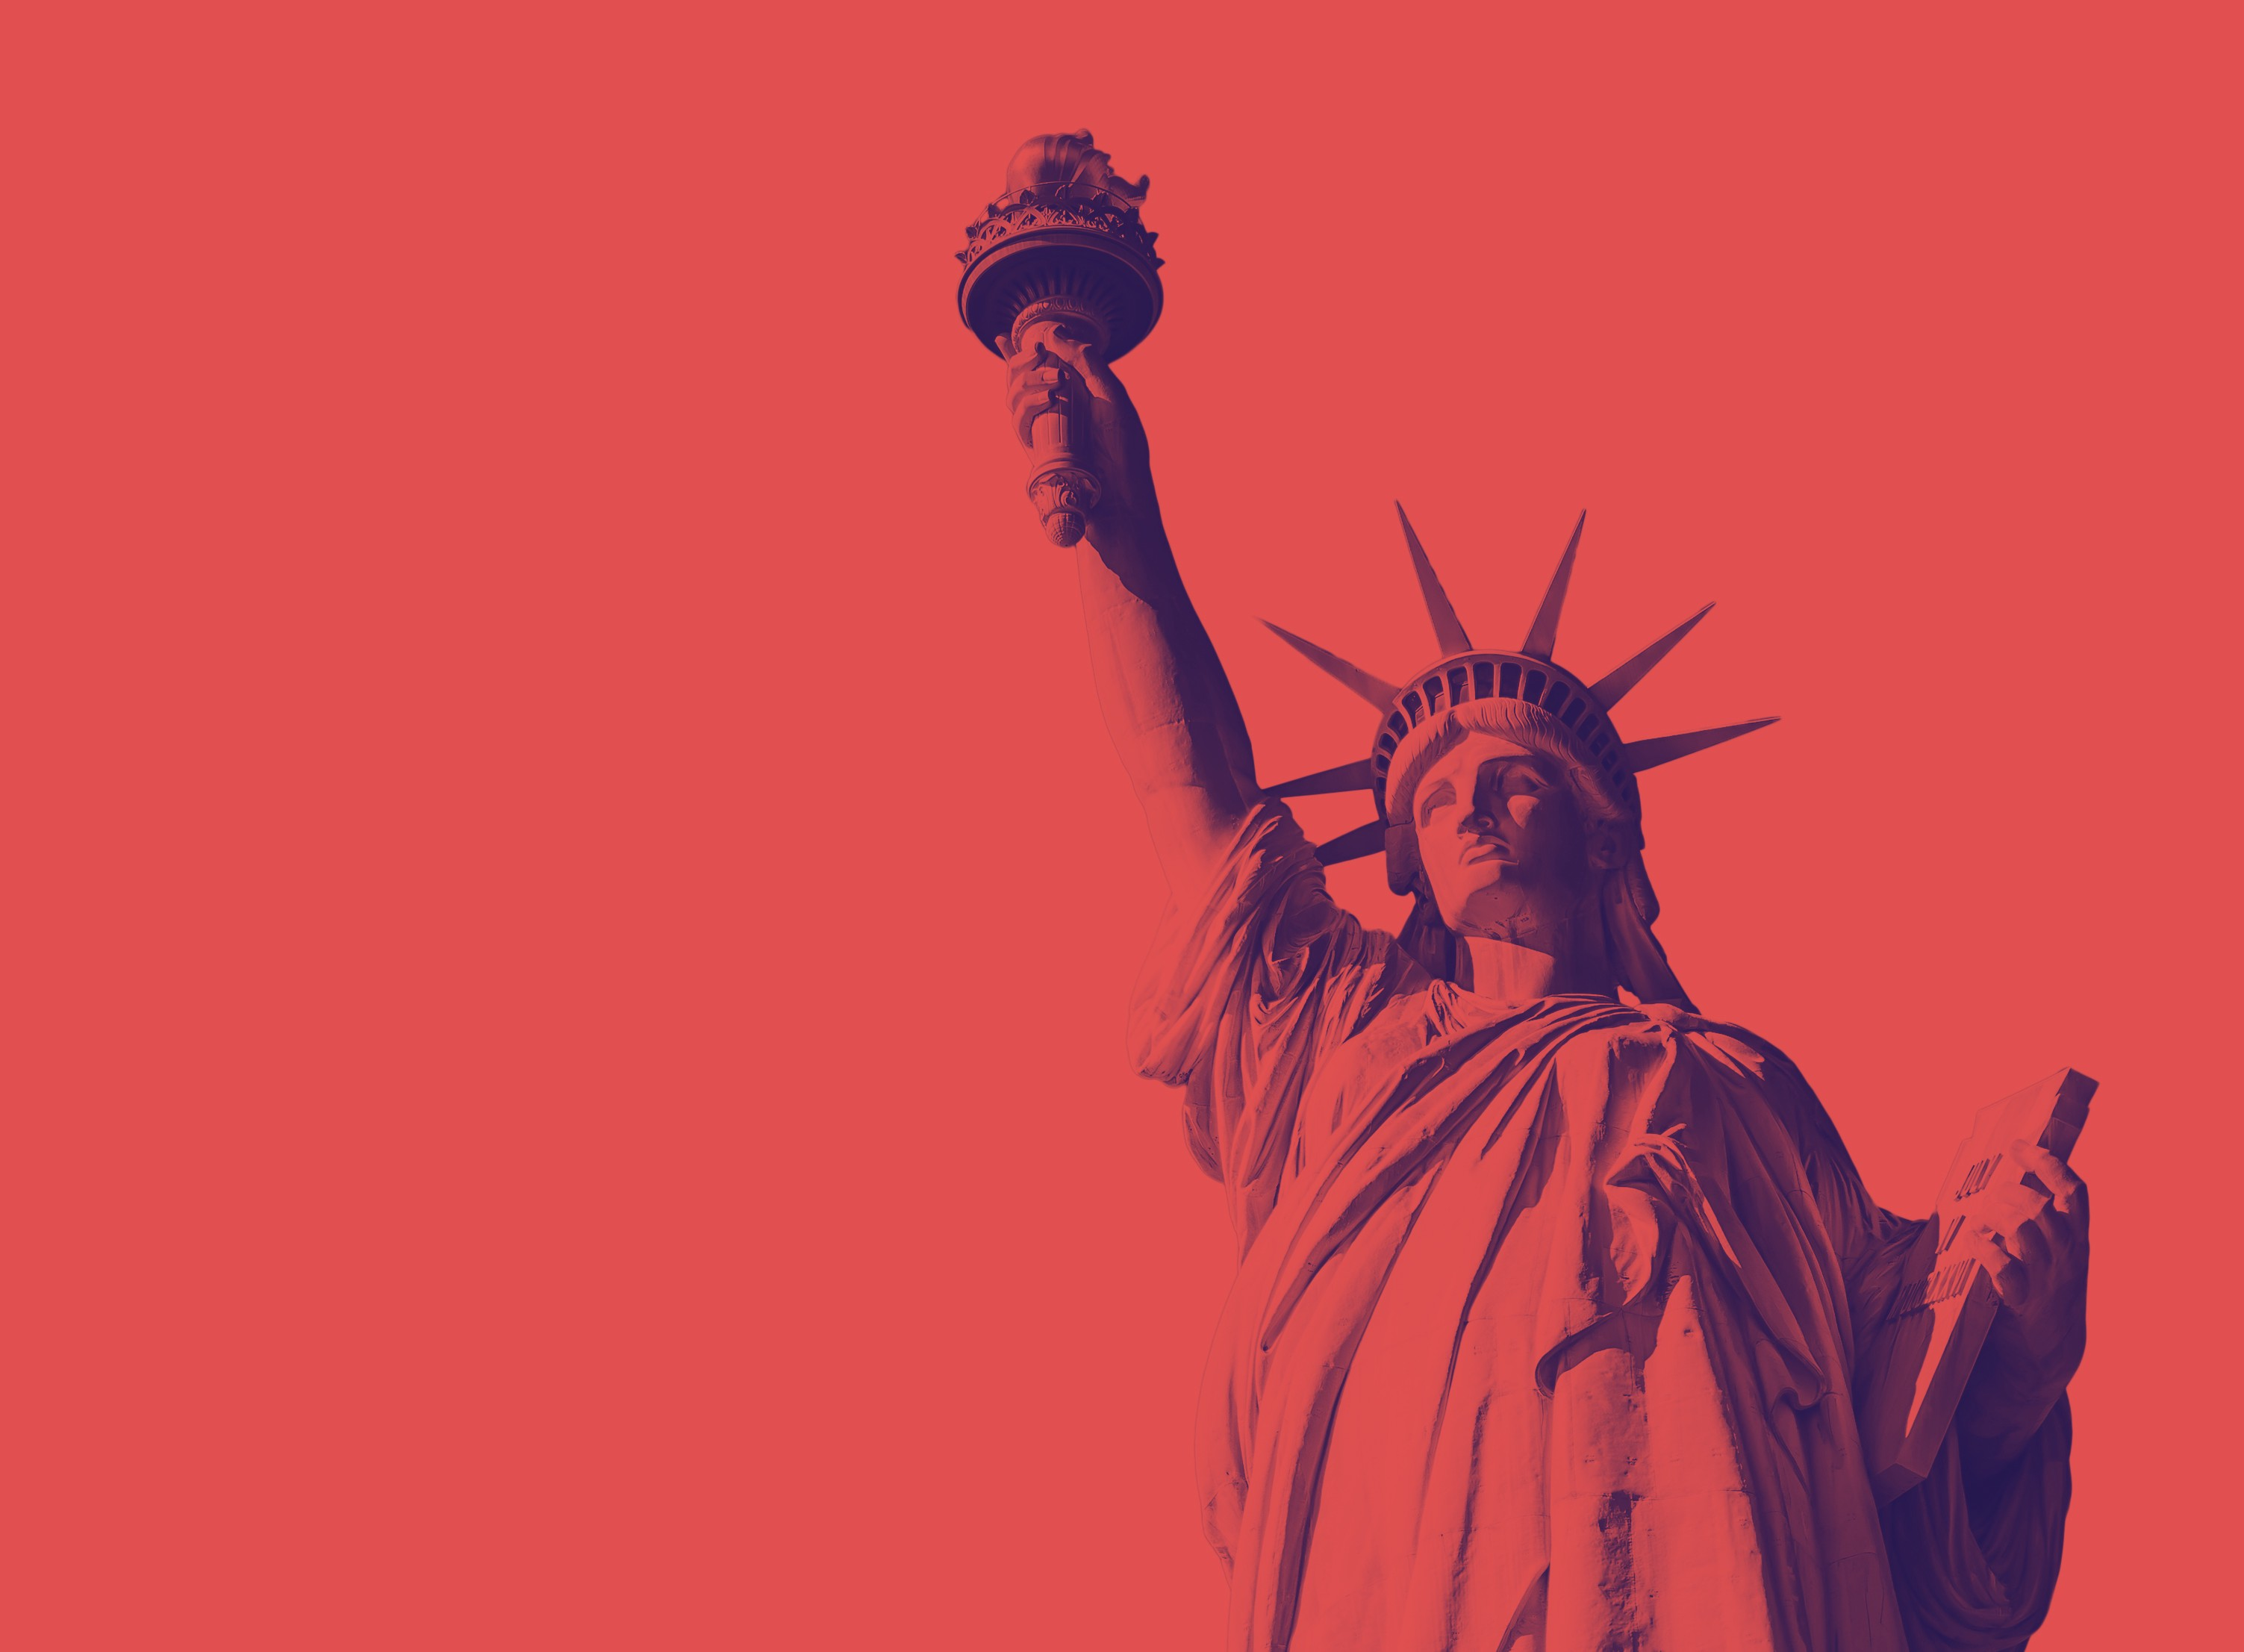 A photo of the Statue of Liberty against a red background.